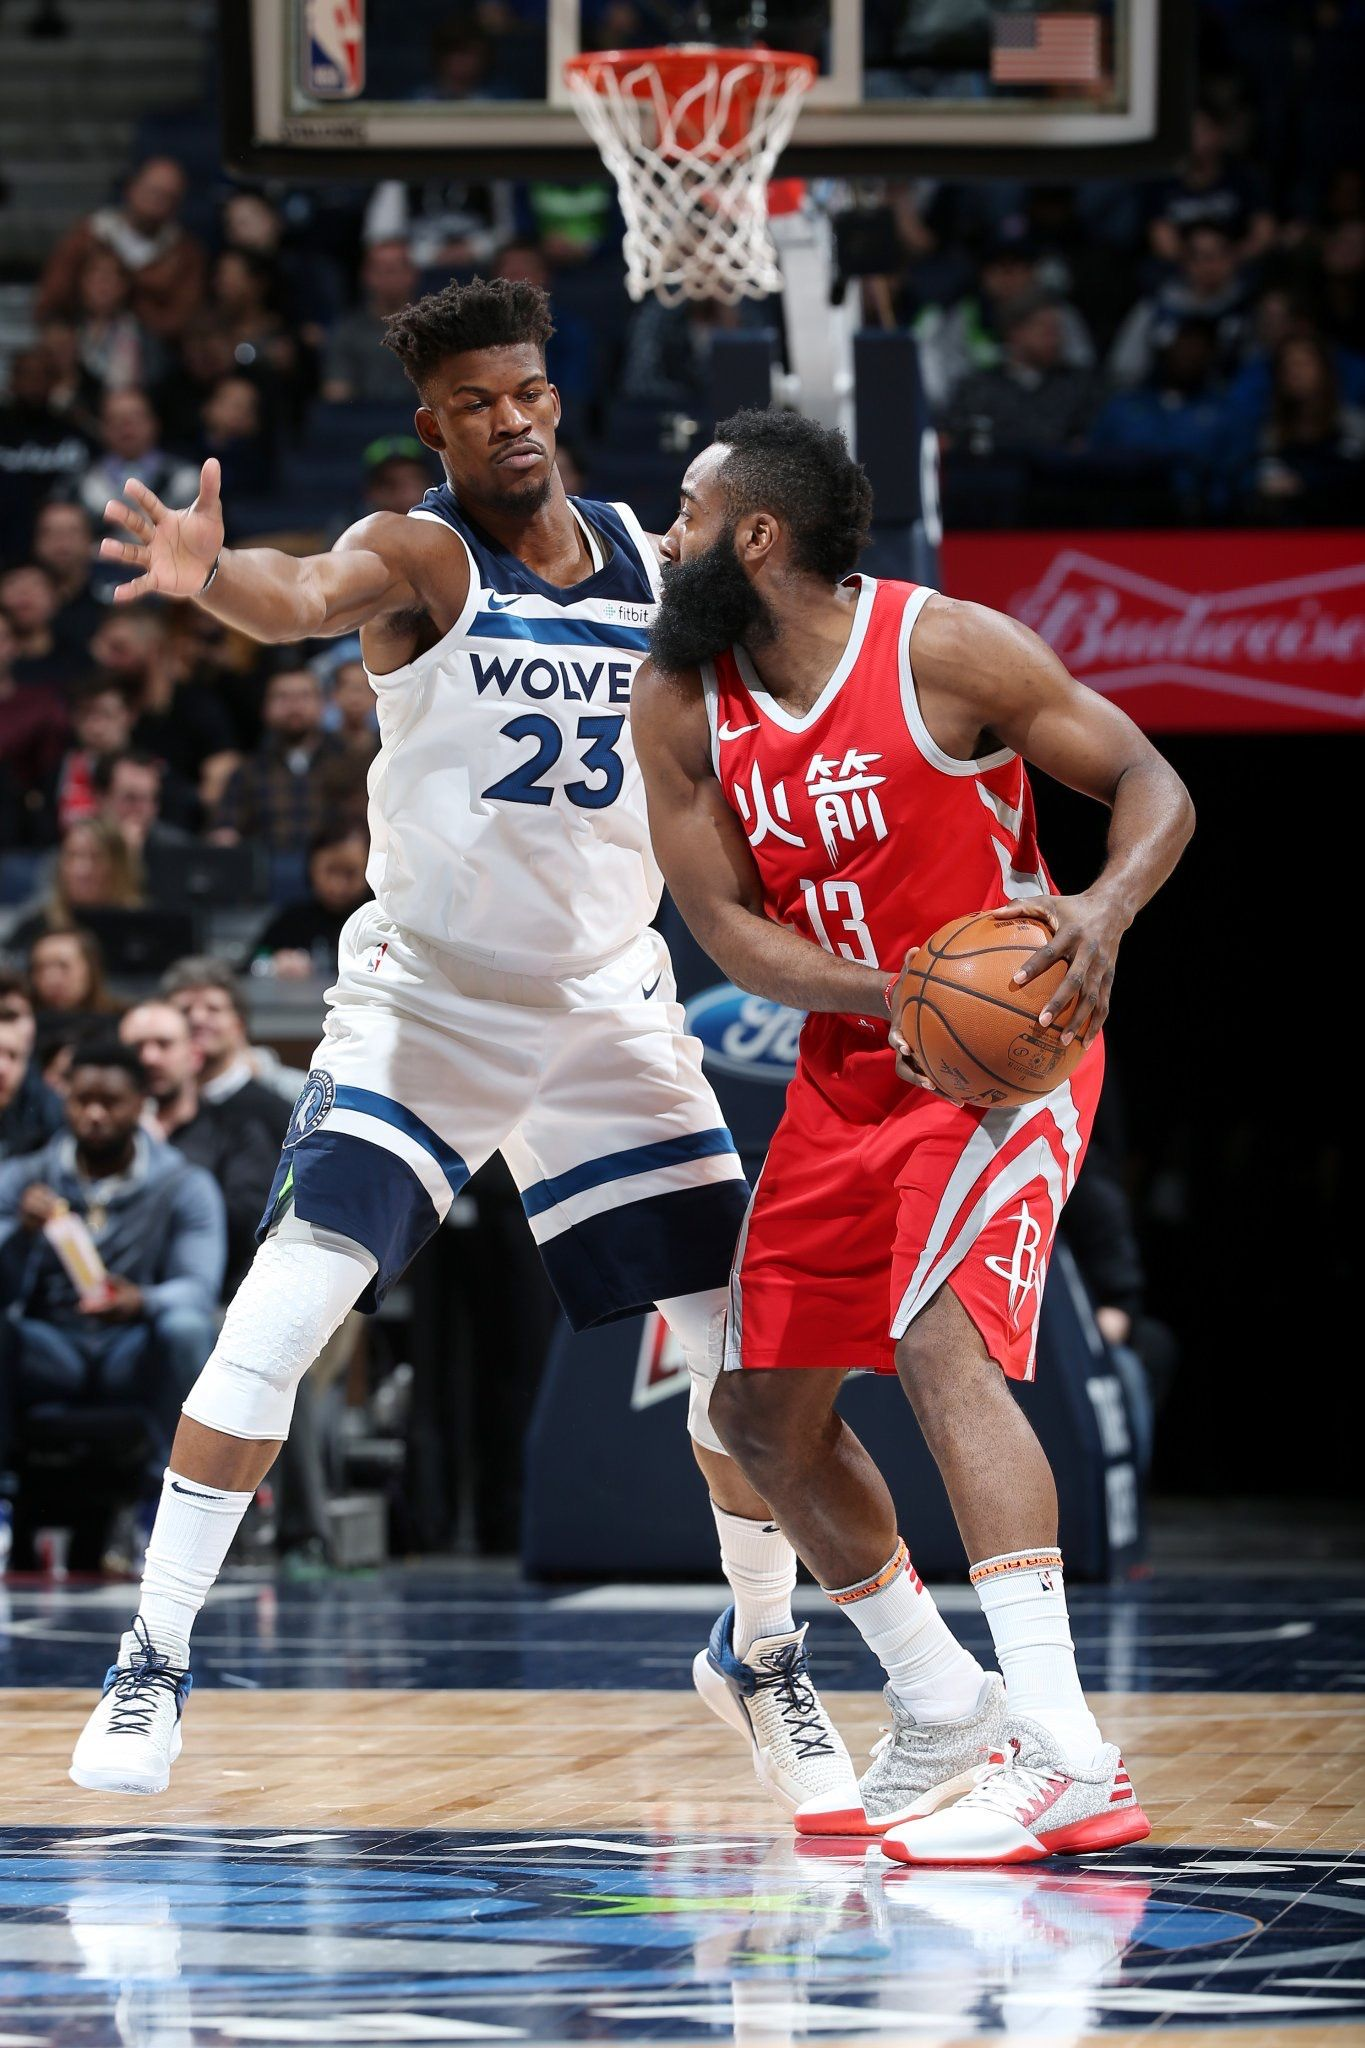 James Harden Being Defended By Jimmy Butler 농구